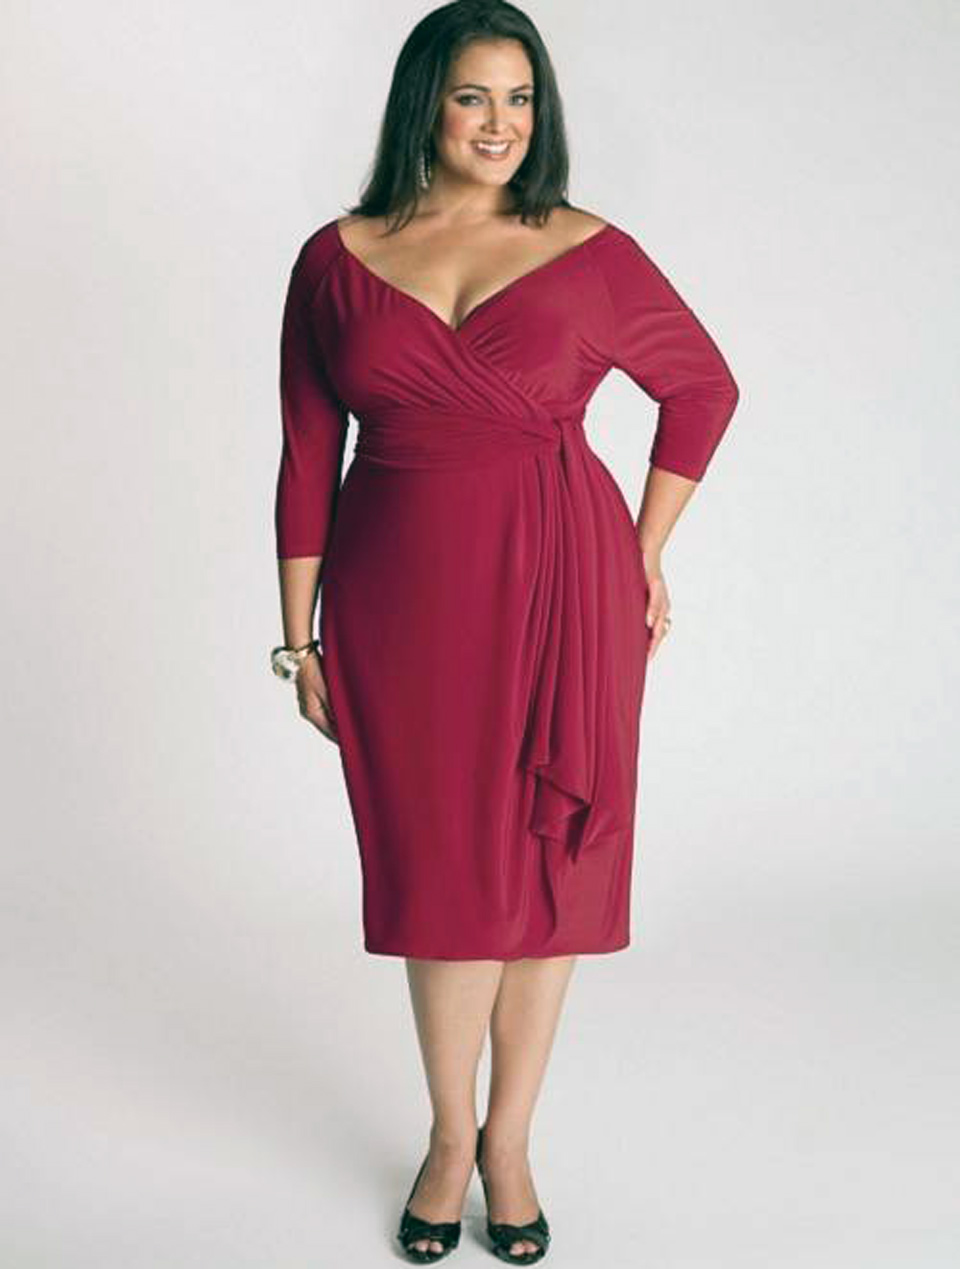 Plus Size Party Dresses Macy'S - Holiday Dresses